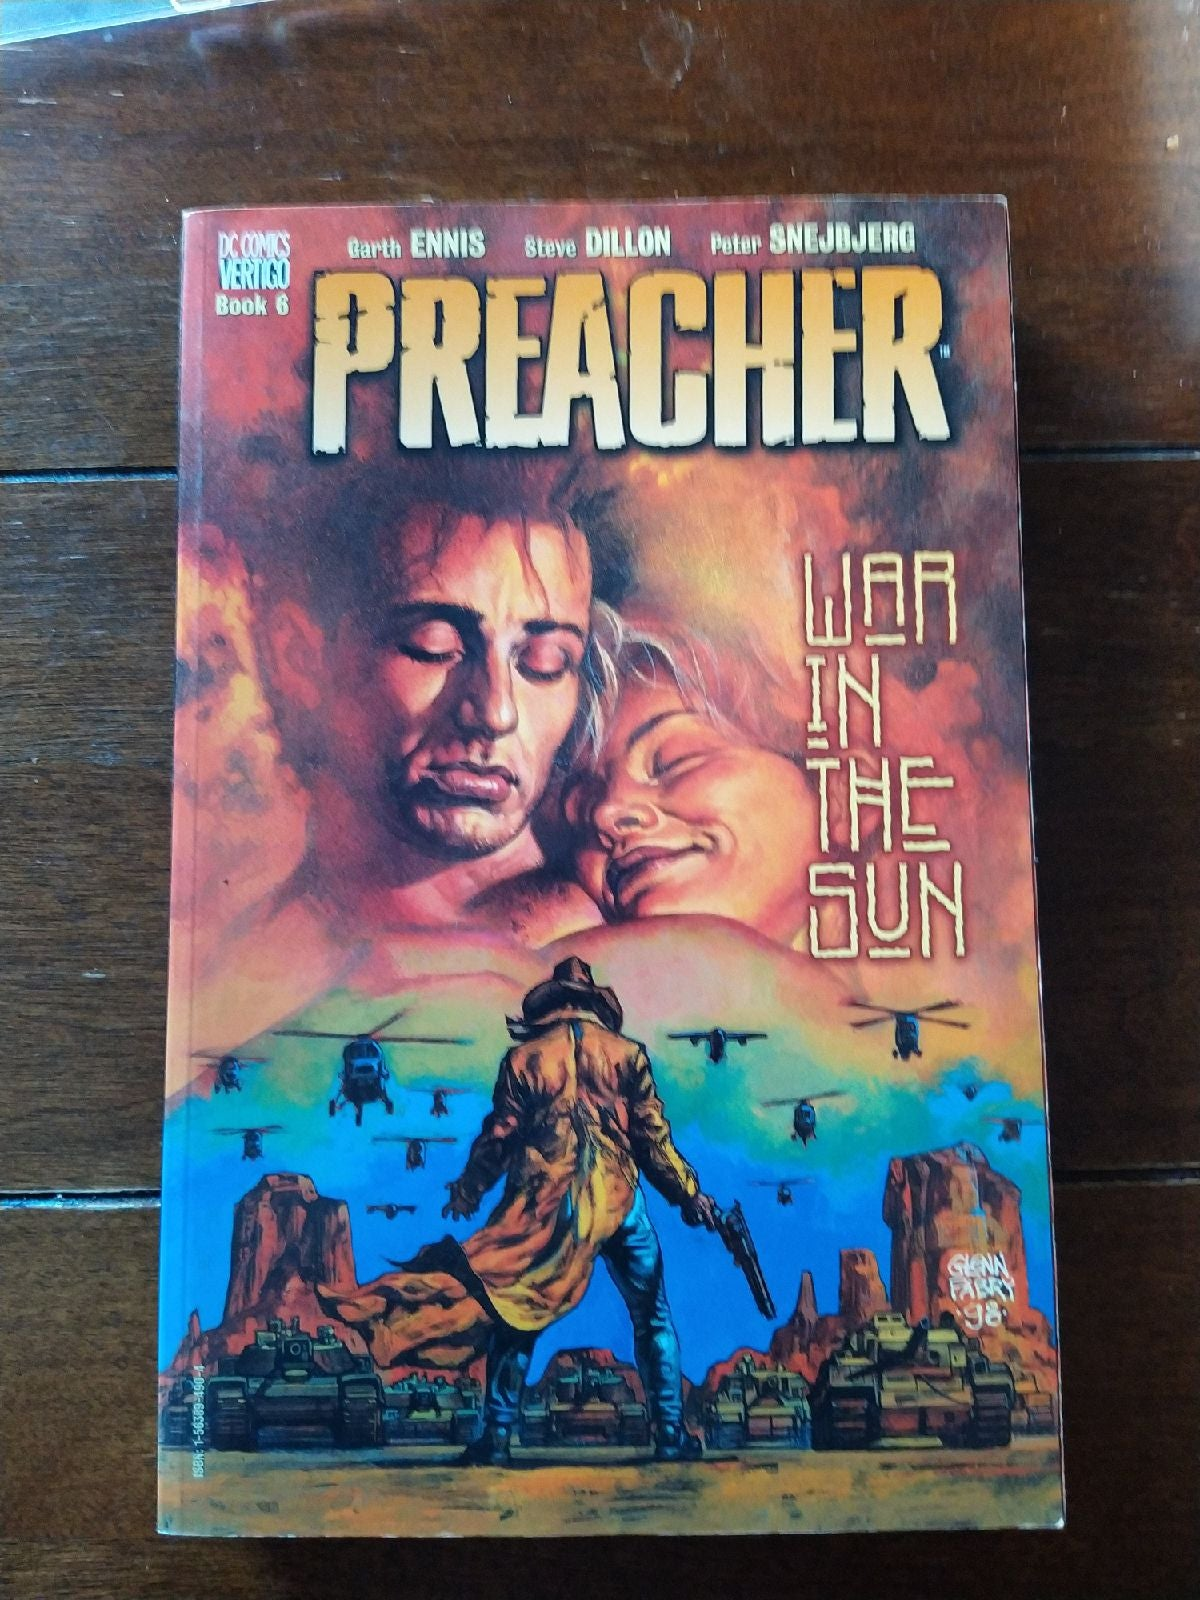 Preacher Book 6 (DC Comics /Vertigo) War